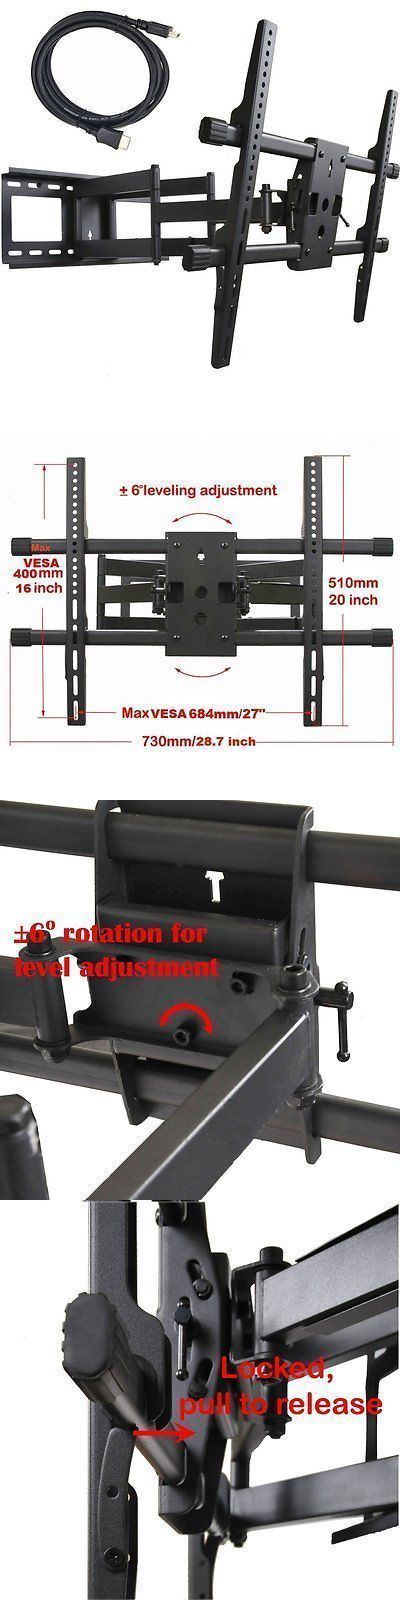 TV Mounts and Brackets: Videosecu Articulating Full Motion Tv Wall Mount For 32-65 Led Lcd Plasma Tvs -> BUY IT NOW ONLY: $81.02 on eBay!